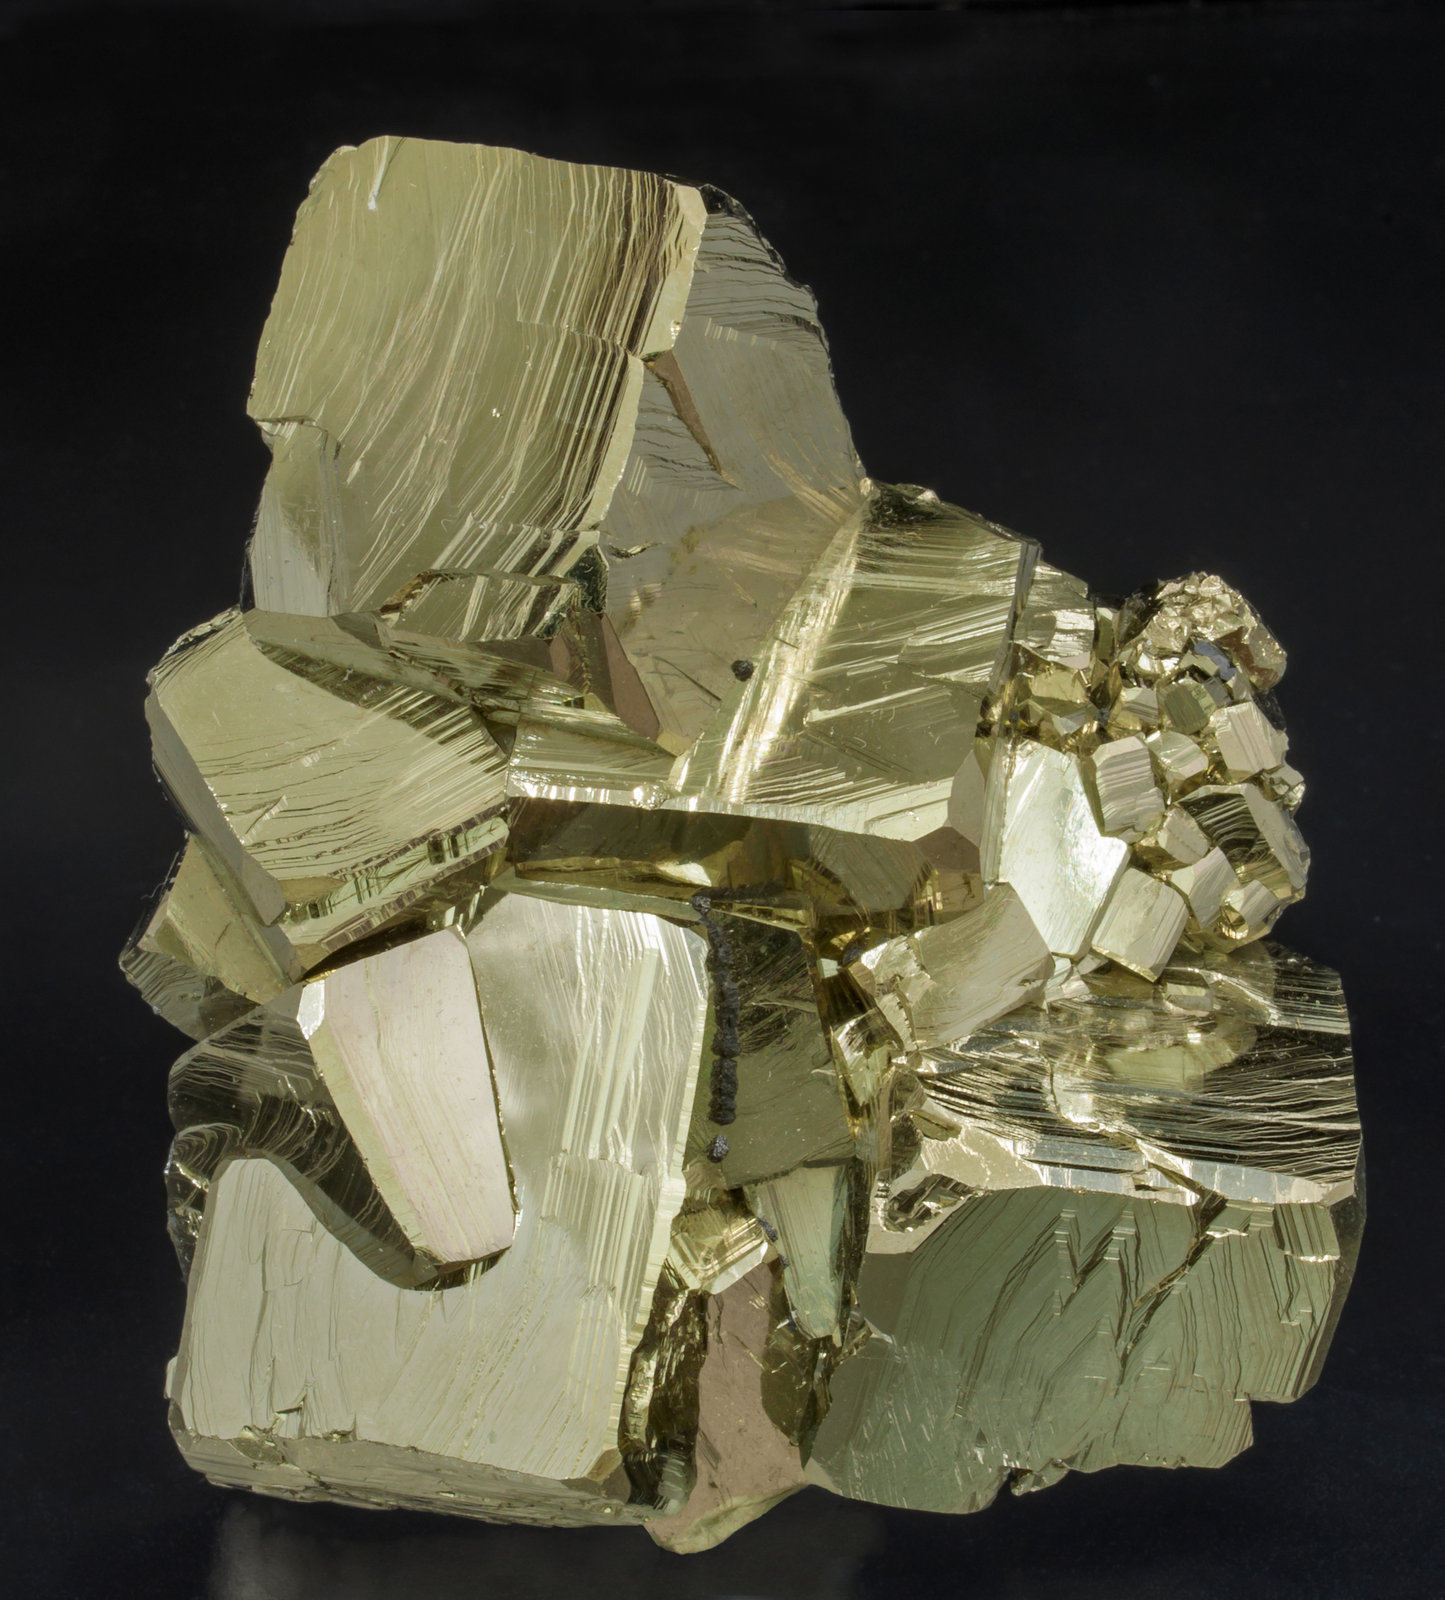 specimens/s_imagesAC9/Pyrite-TF59AC9s.jpg